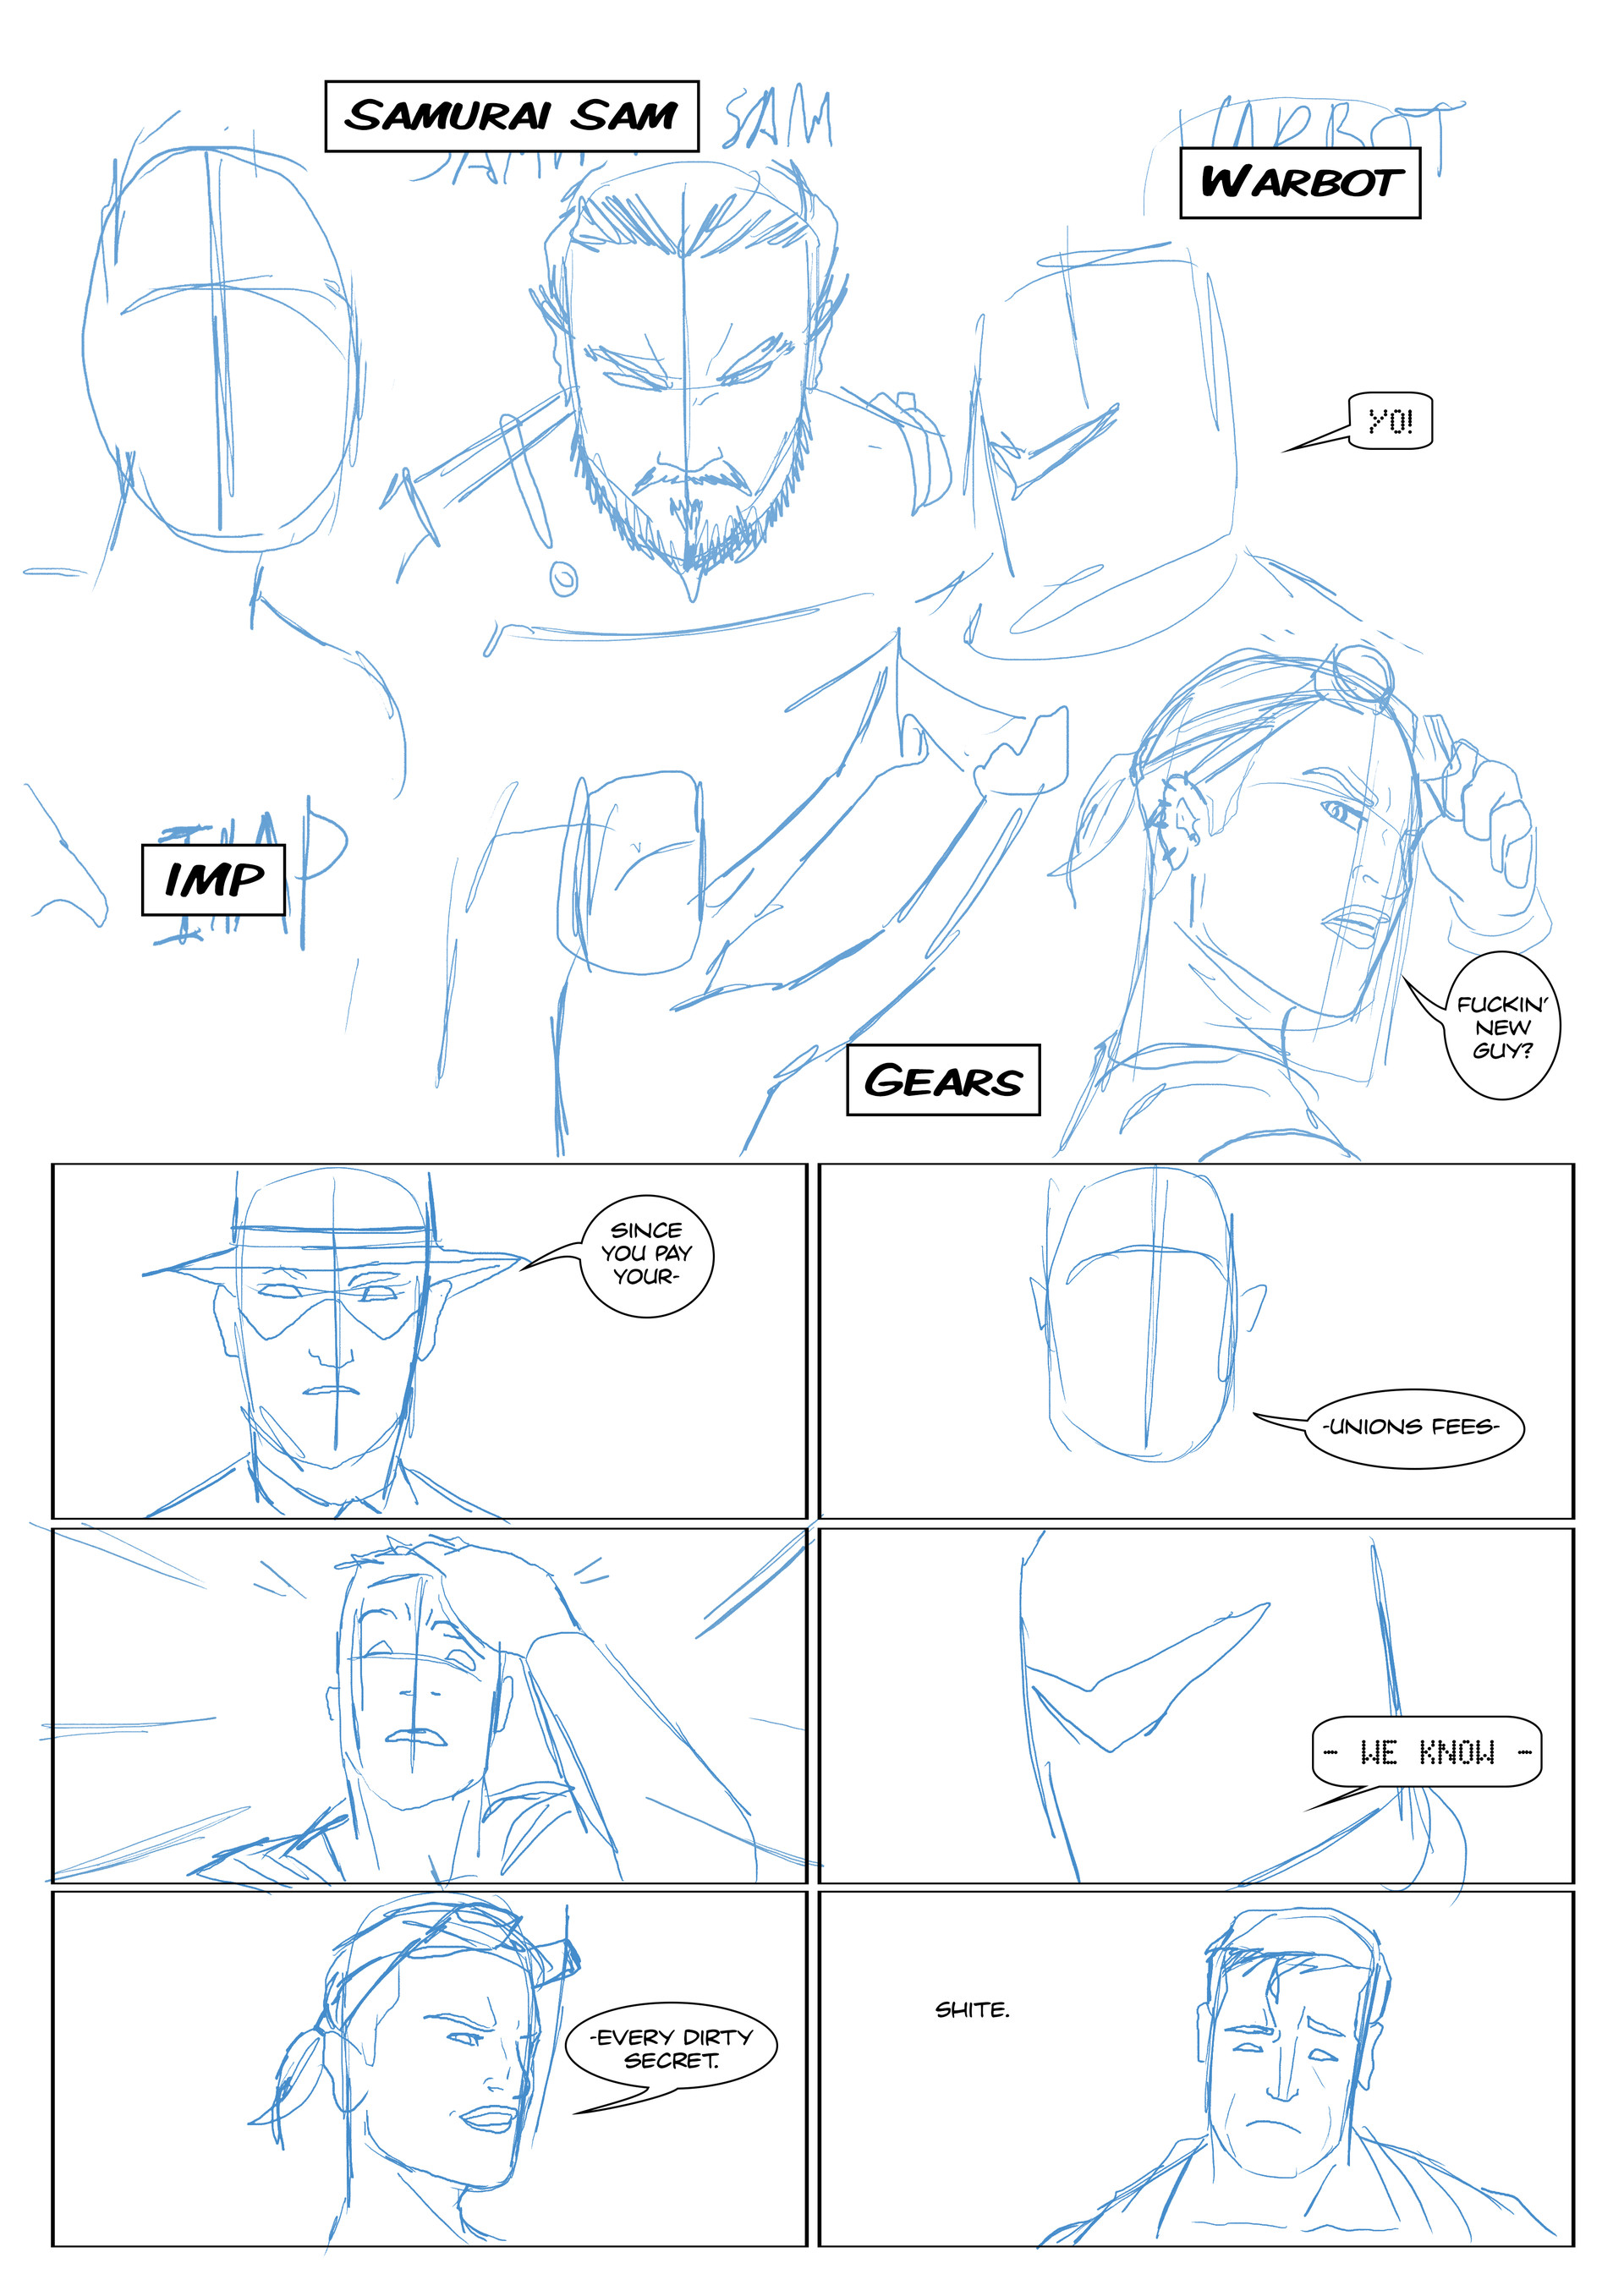 Elliot balson page 3 roughs